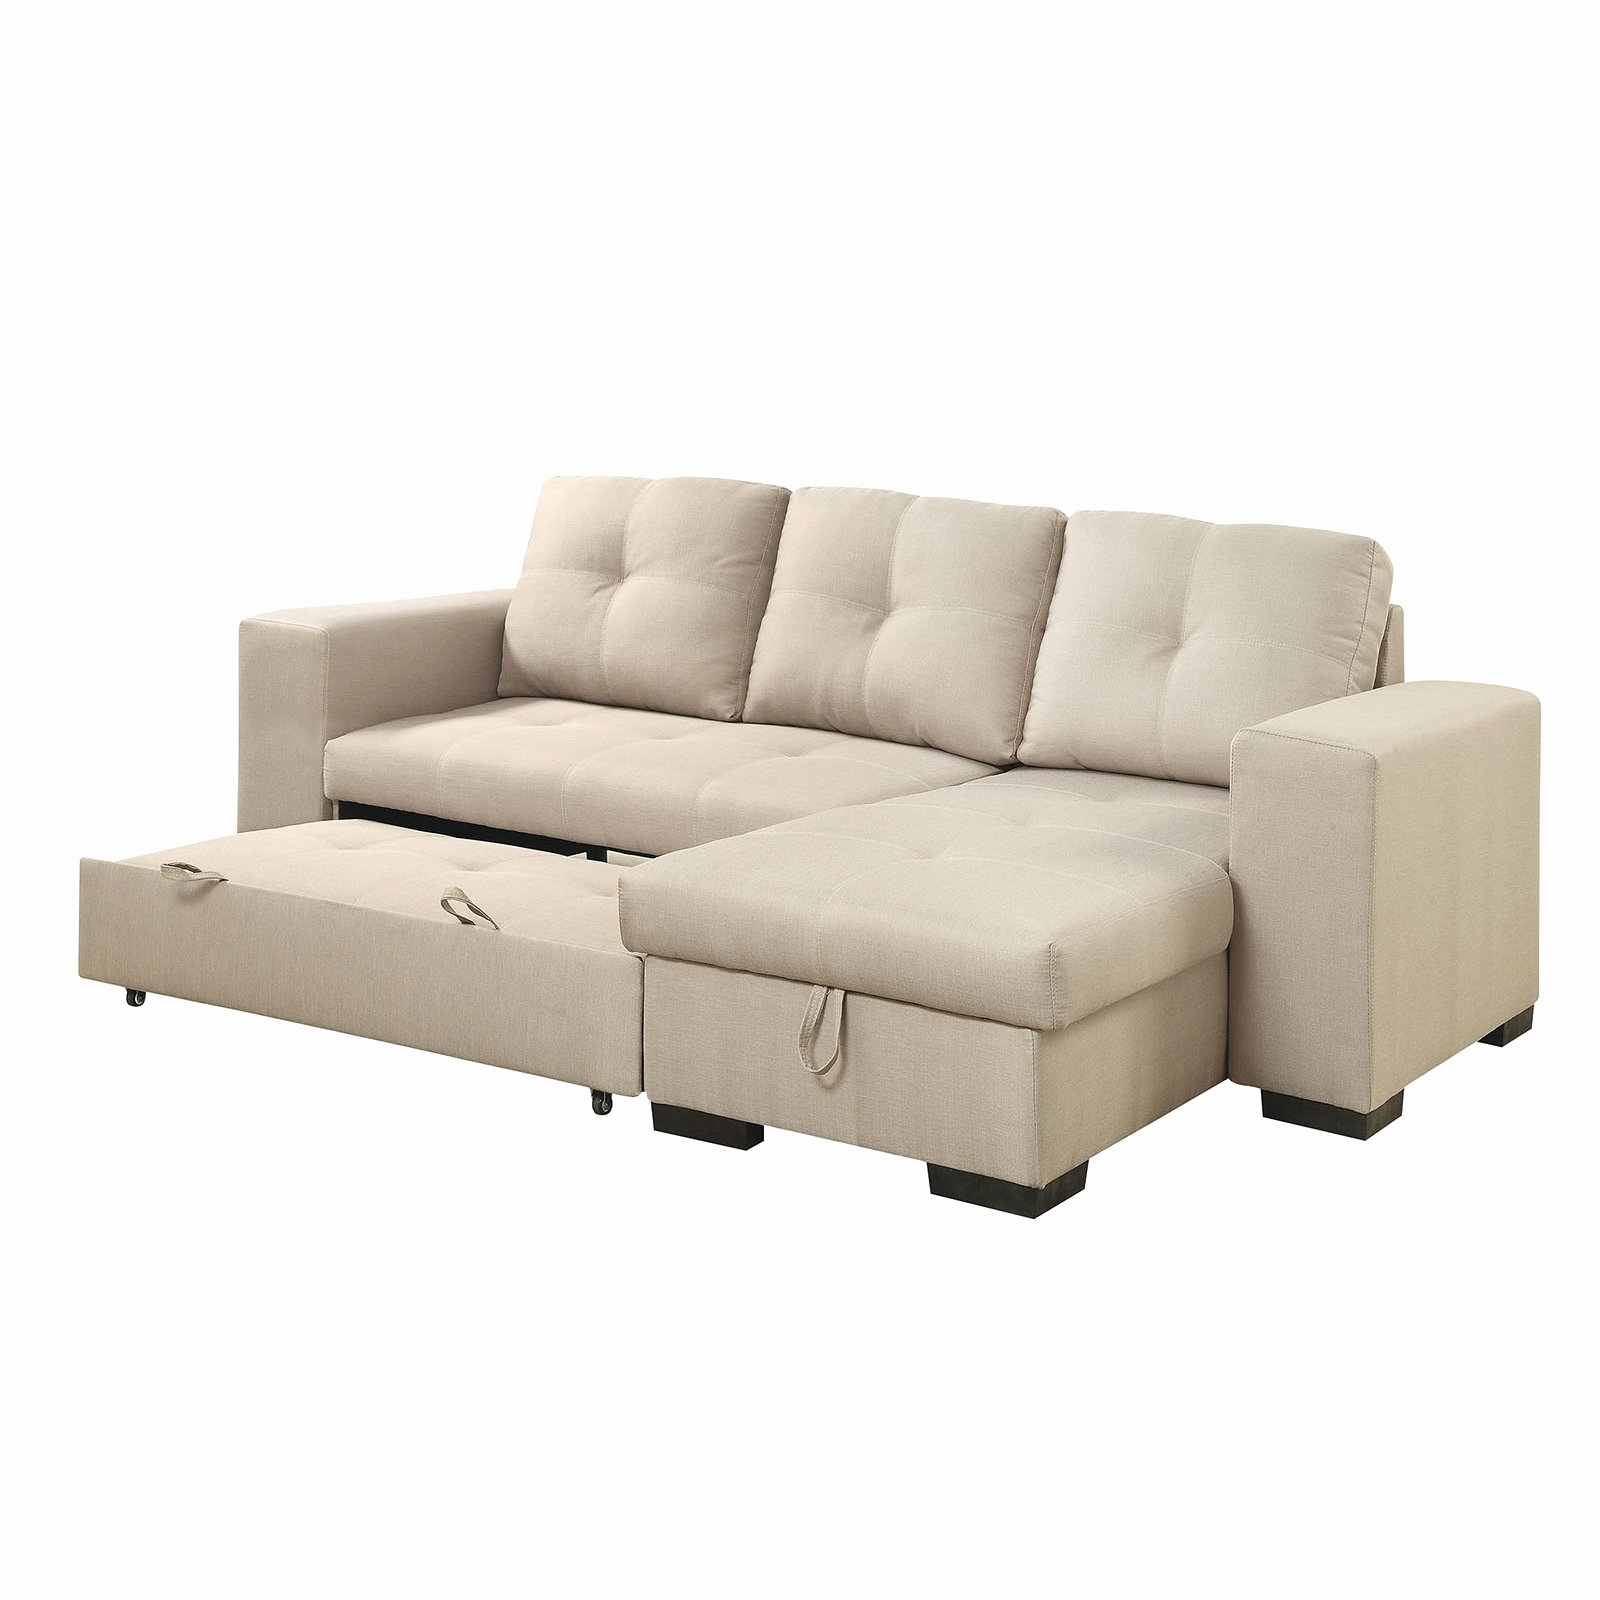 Best Pull Out Couch And Loveseat 2018 – Couches And Sofas Ideas With Regard To Well Known Loveseats With Chaise Lounge (View 10 of 15)